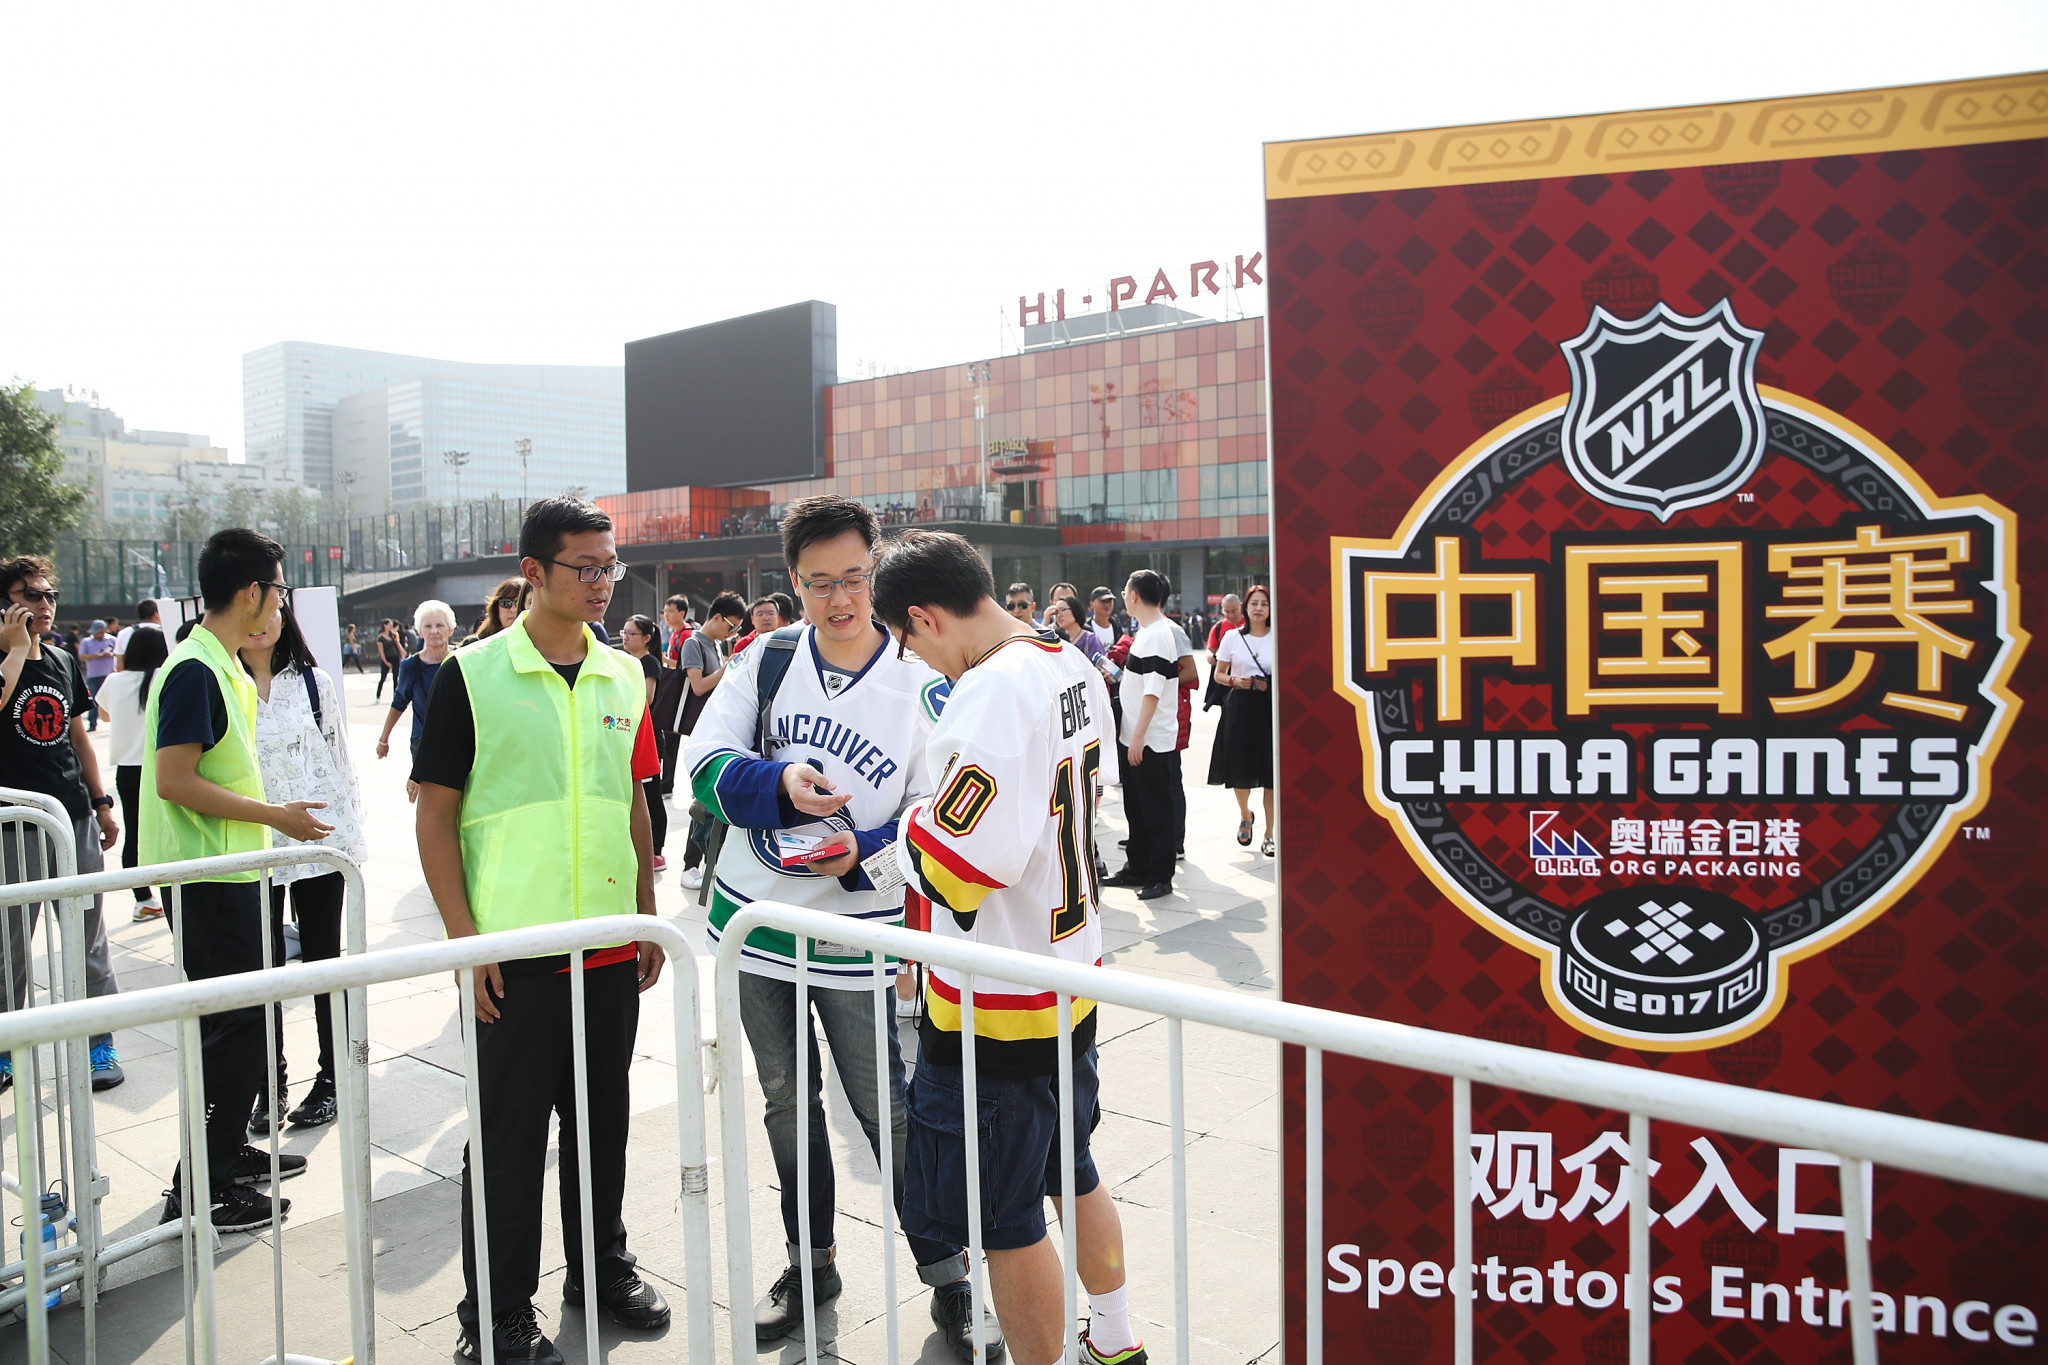 Two pre-season NHL matches were held in China for the first time last year and regular season games are possibility in the future, it has been claimed ©Getty Images